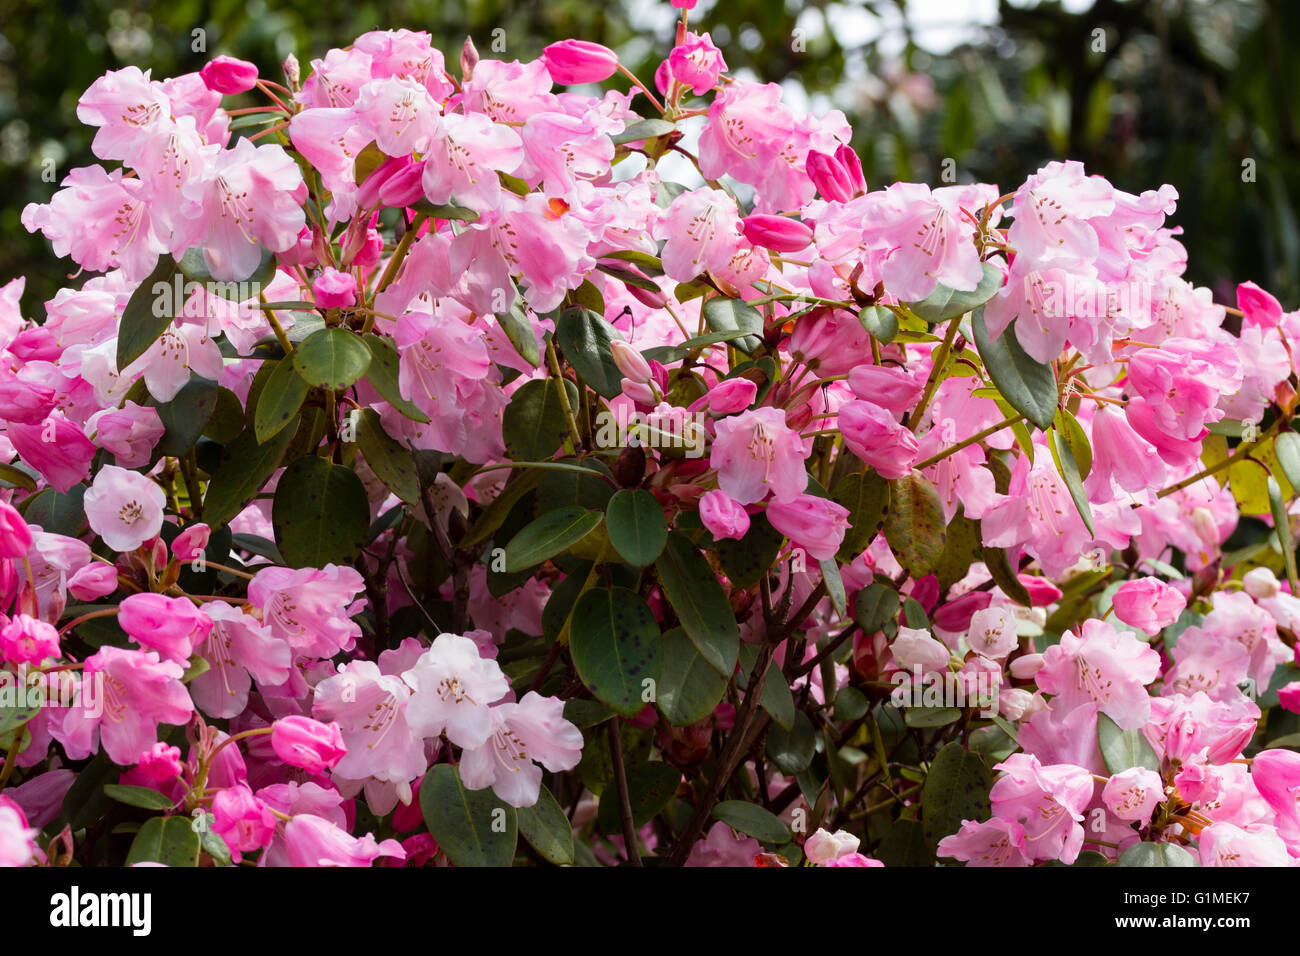 Delicate pink flowers of the hybrid evergreen shrub rhododendron delicate pink flowers of the hybrid evergreen shrub rhododendron bow bells mightylinksfo